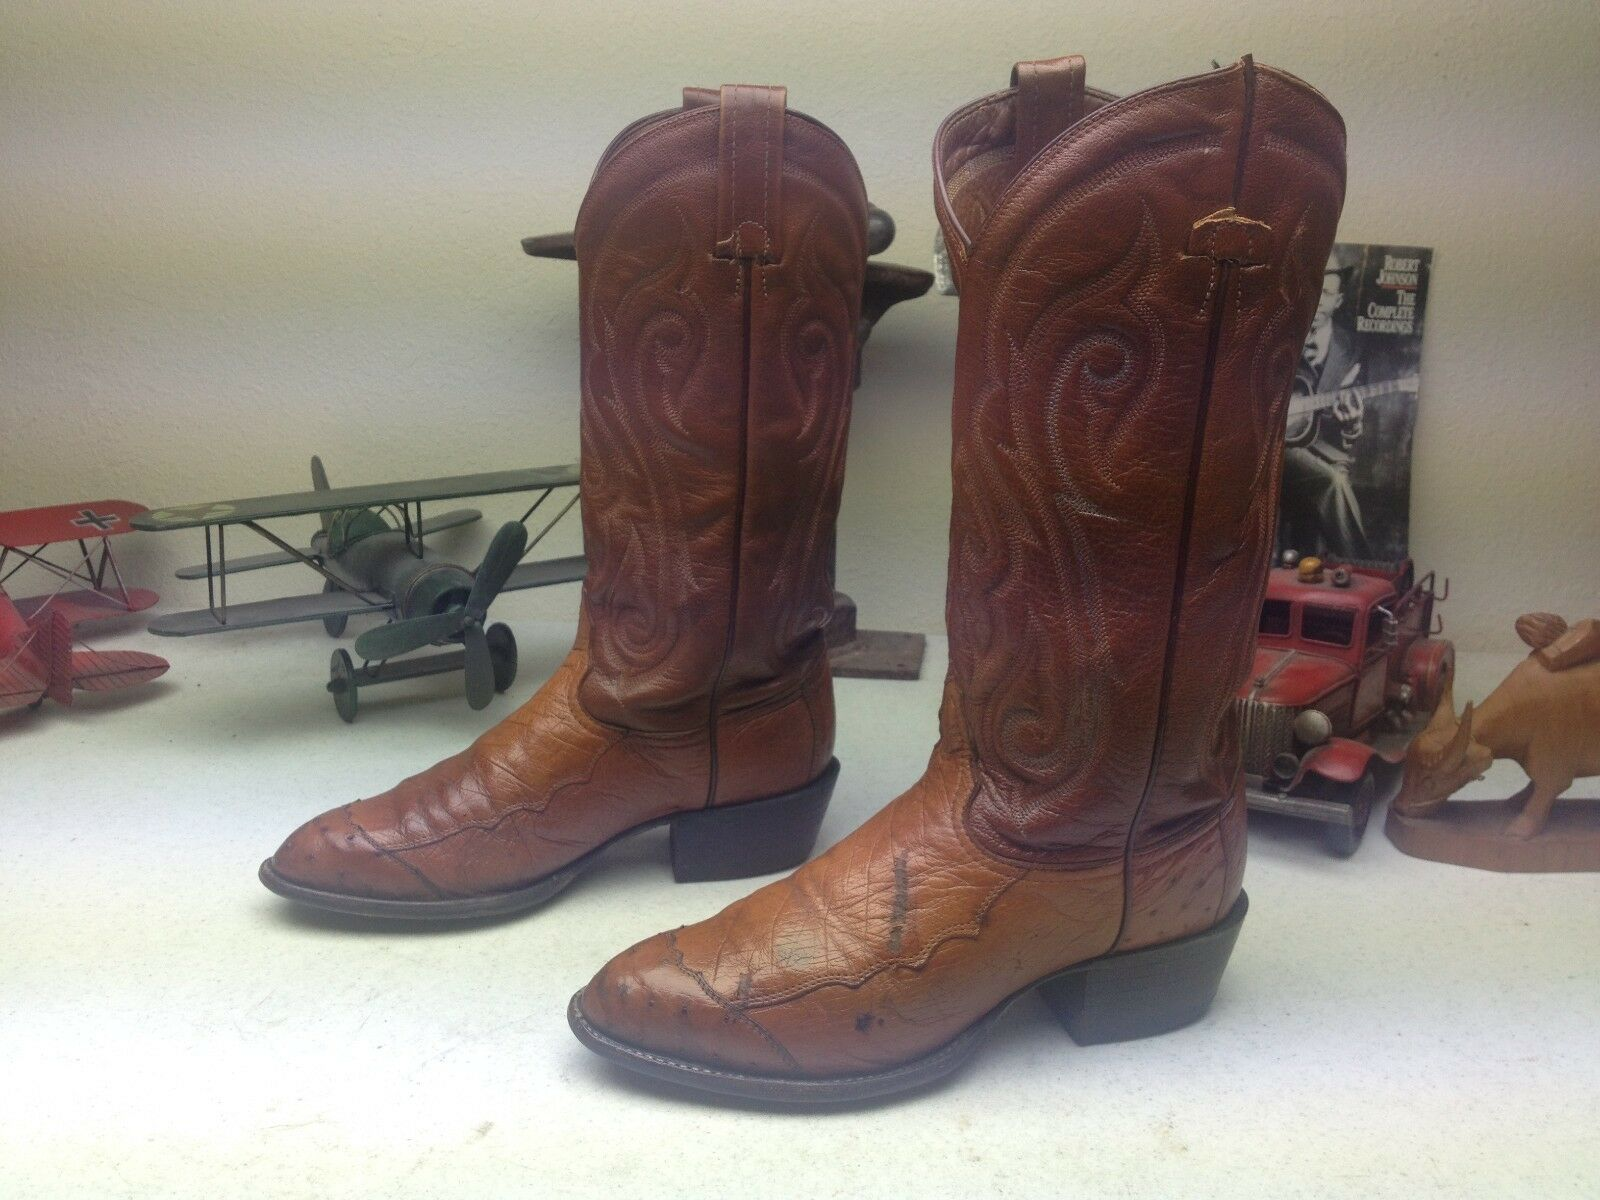 DISTRESSED OSTRICH TONY LAMA ENGINEER TRAIL BOSS OLD RANCH WORK BOOTS 6.5 C